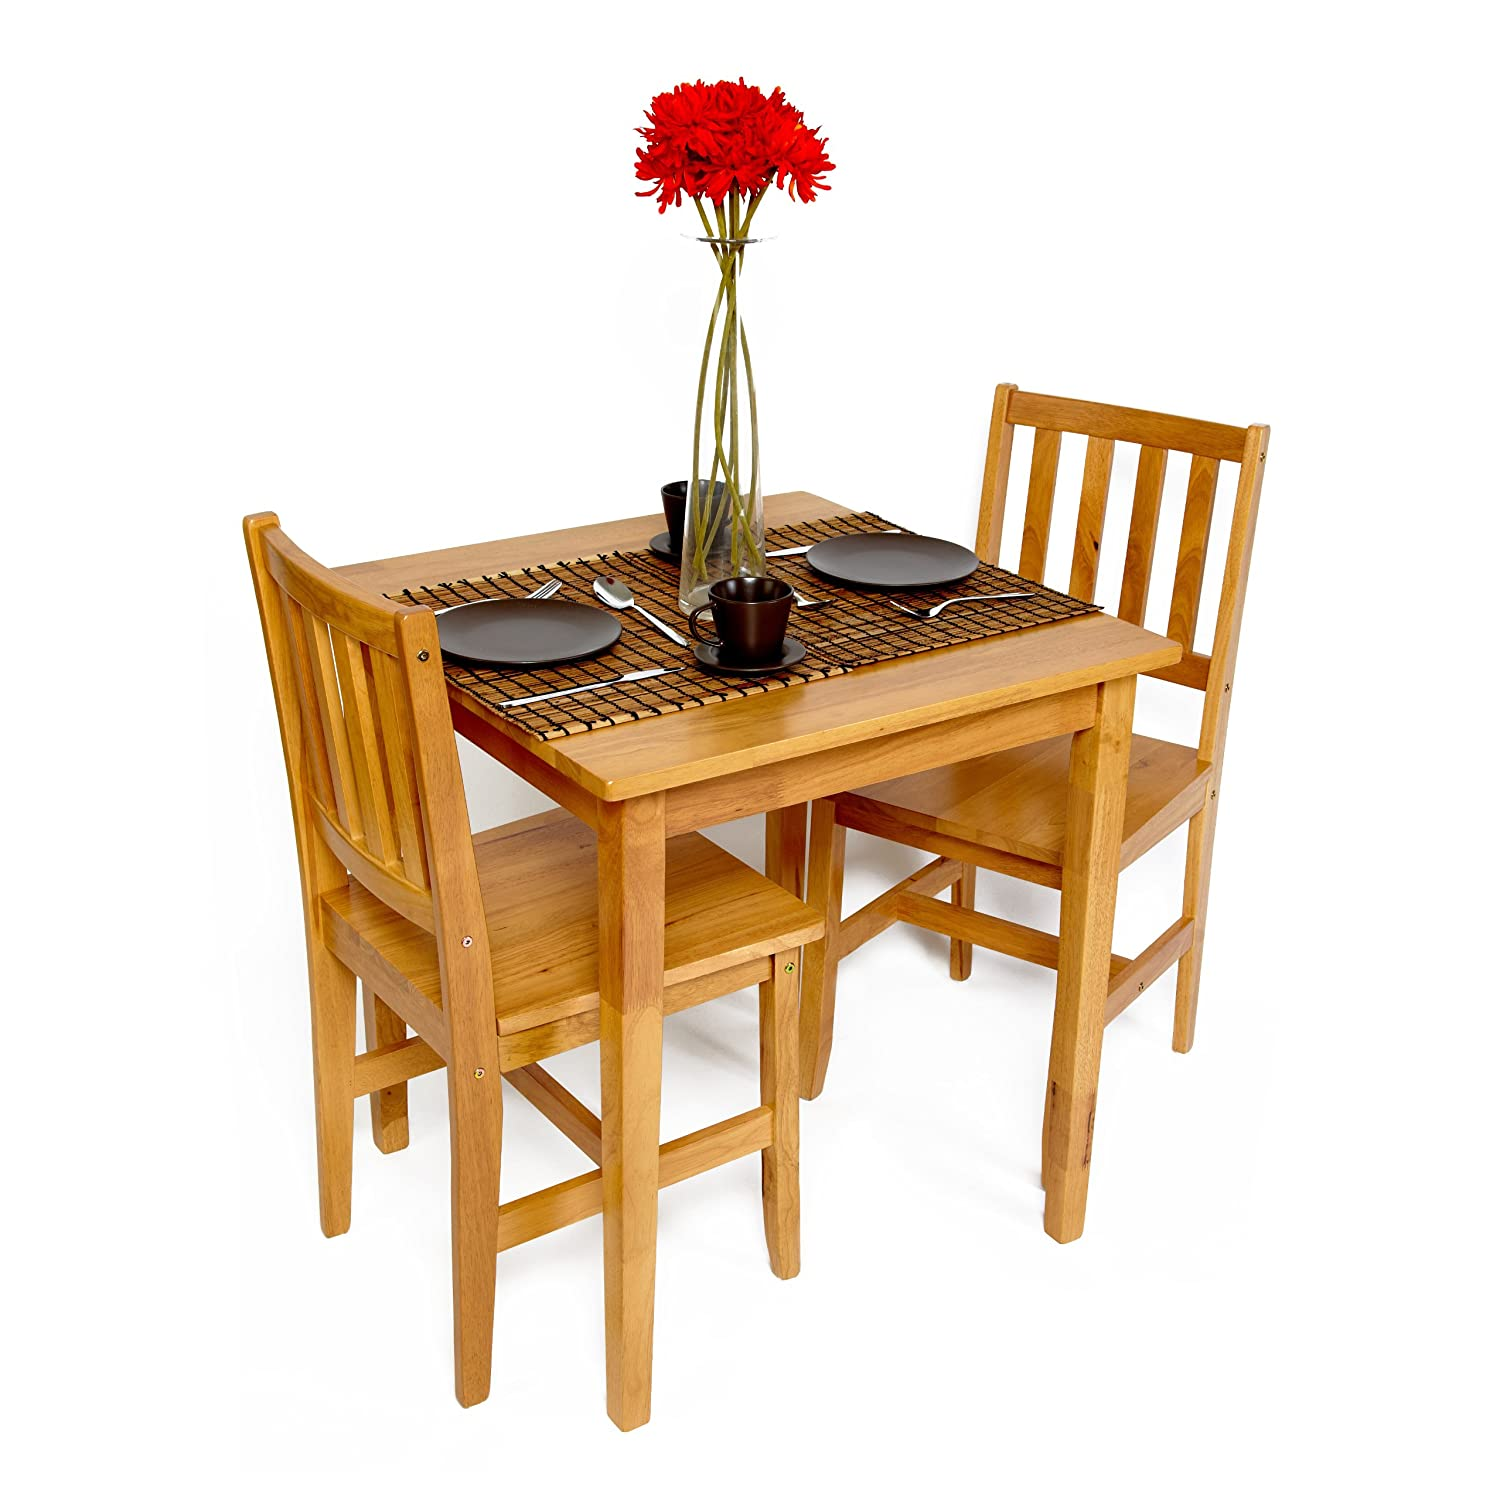 Table and chairs set dining bistro small cafe tables wood for Small dinner table and chairs